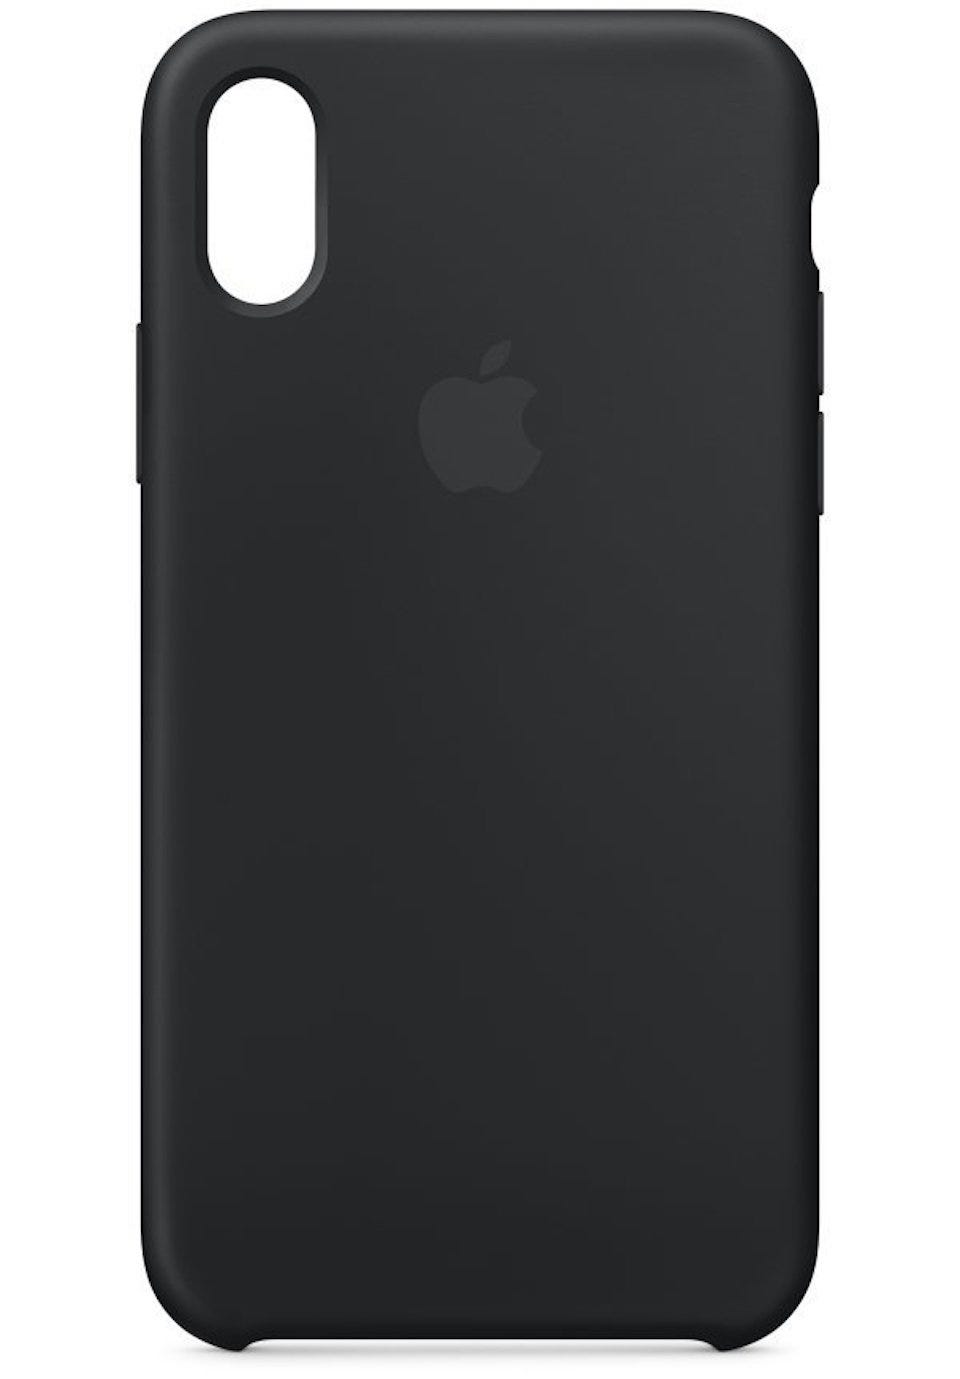 sale retailer ca5d6 01b12 The Best Slim, Low Profile iPhone X Cases (That Still Protect Your ...